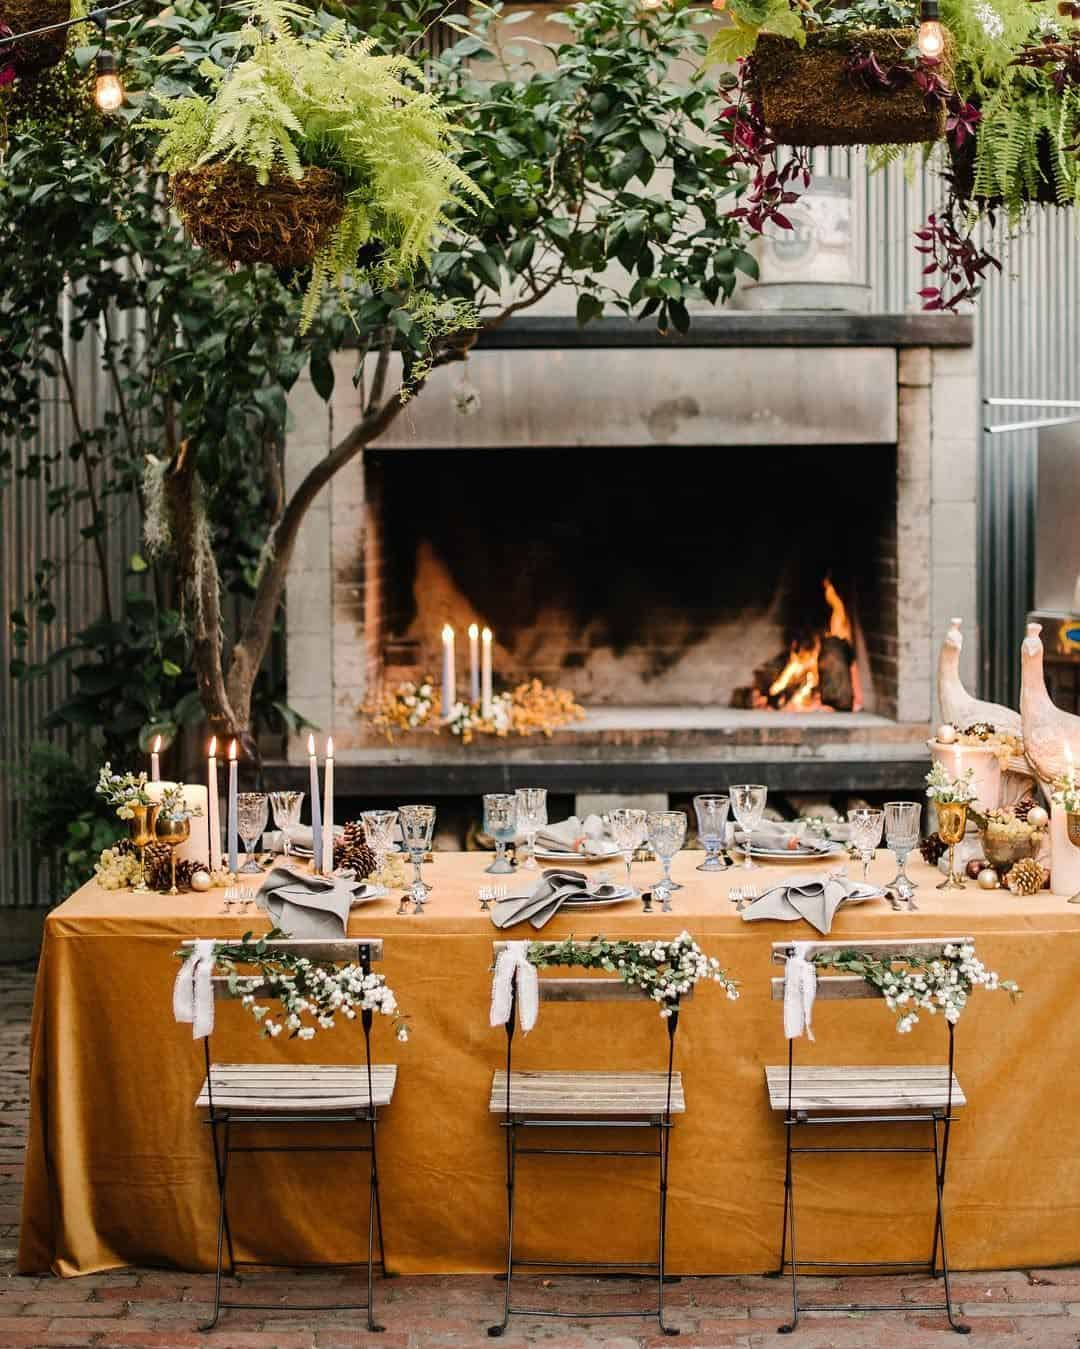 Cozy fireplace Embracing Summer Garden Party Ideas To Invite People Happiness In A Warmer Weather